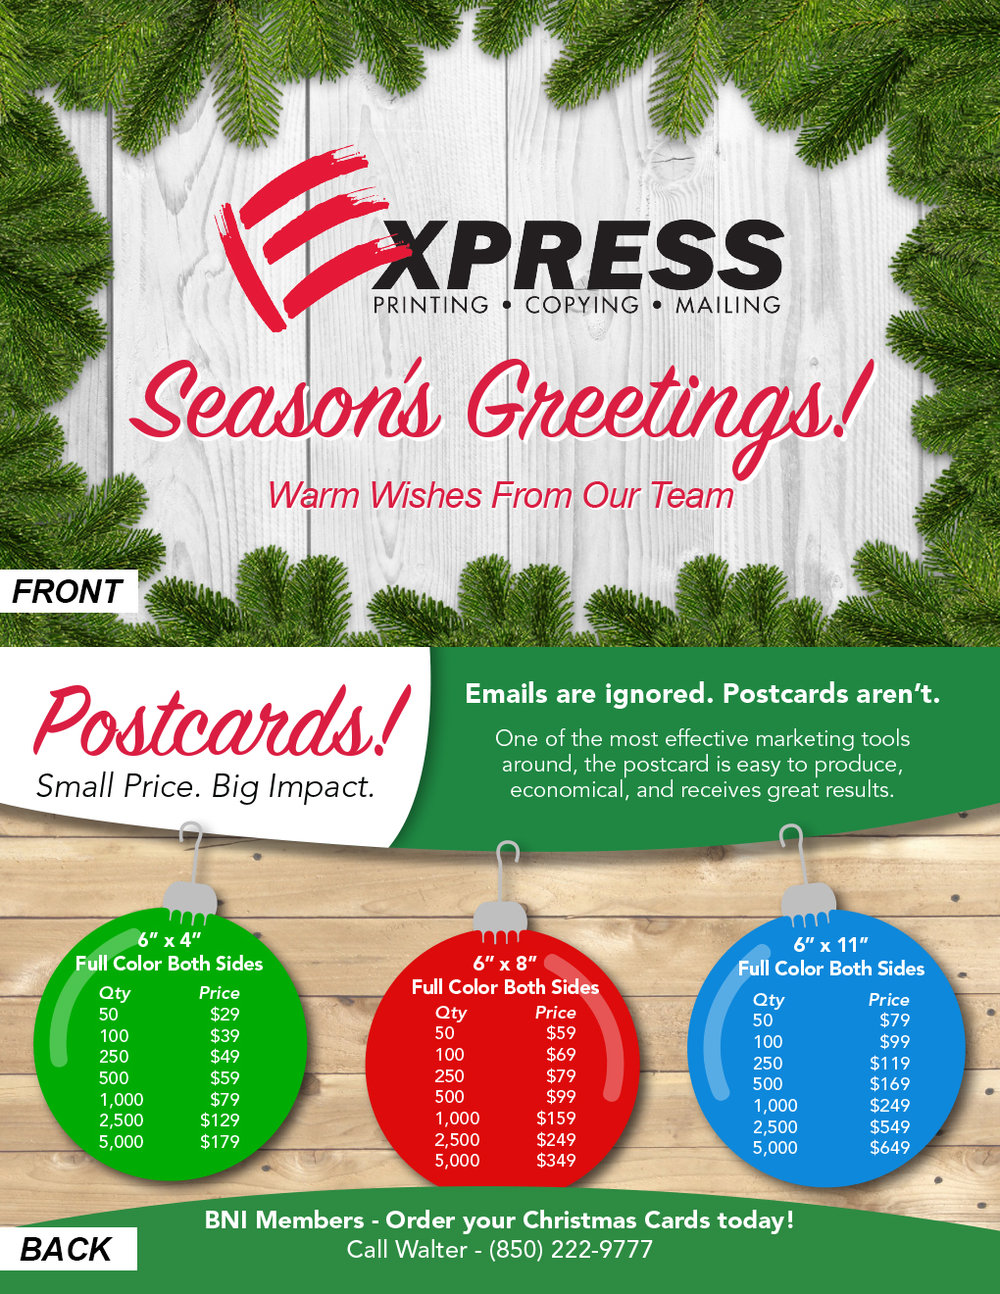 Express Printing Holiday Postcard Promotion - This is an 8.5 x 5.5 in. handout I designed to raise awareness of the holiday postcard promotion that Express Printing offers.